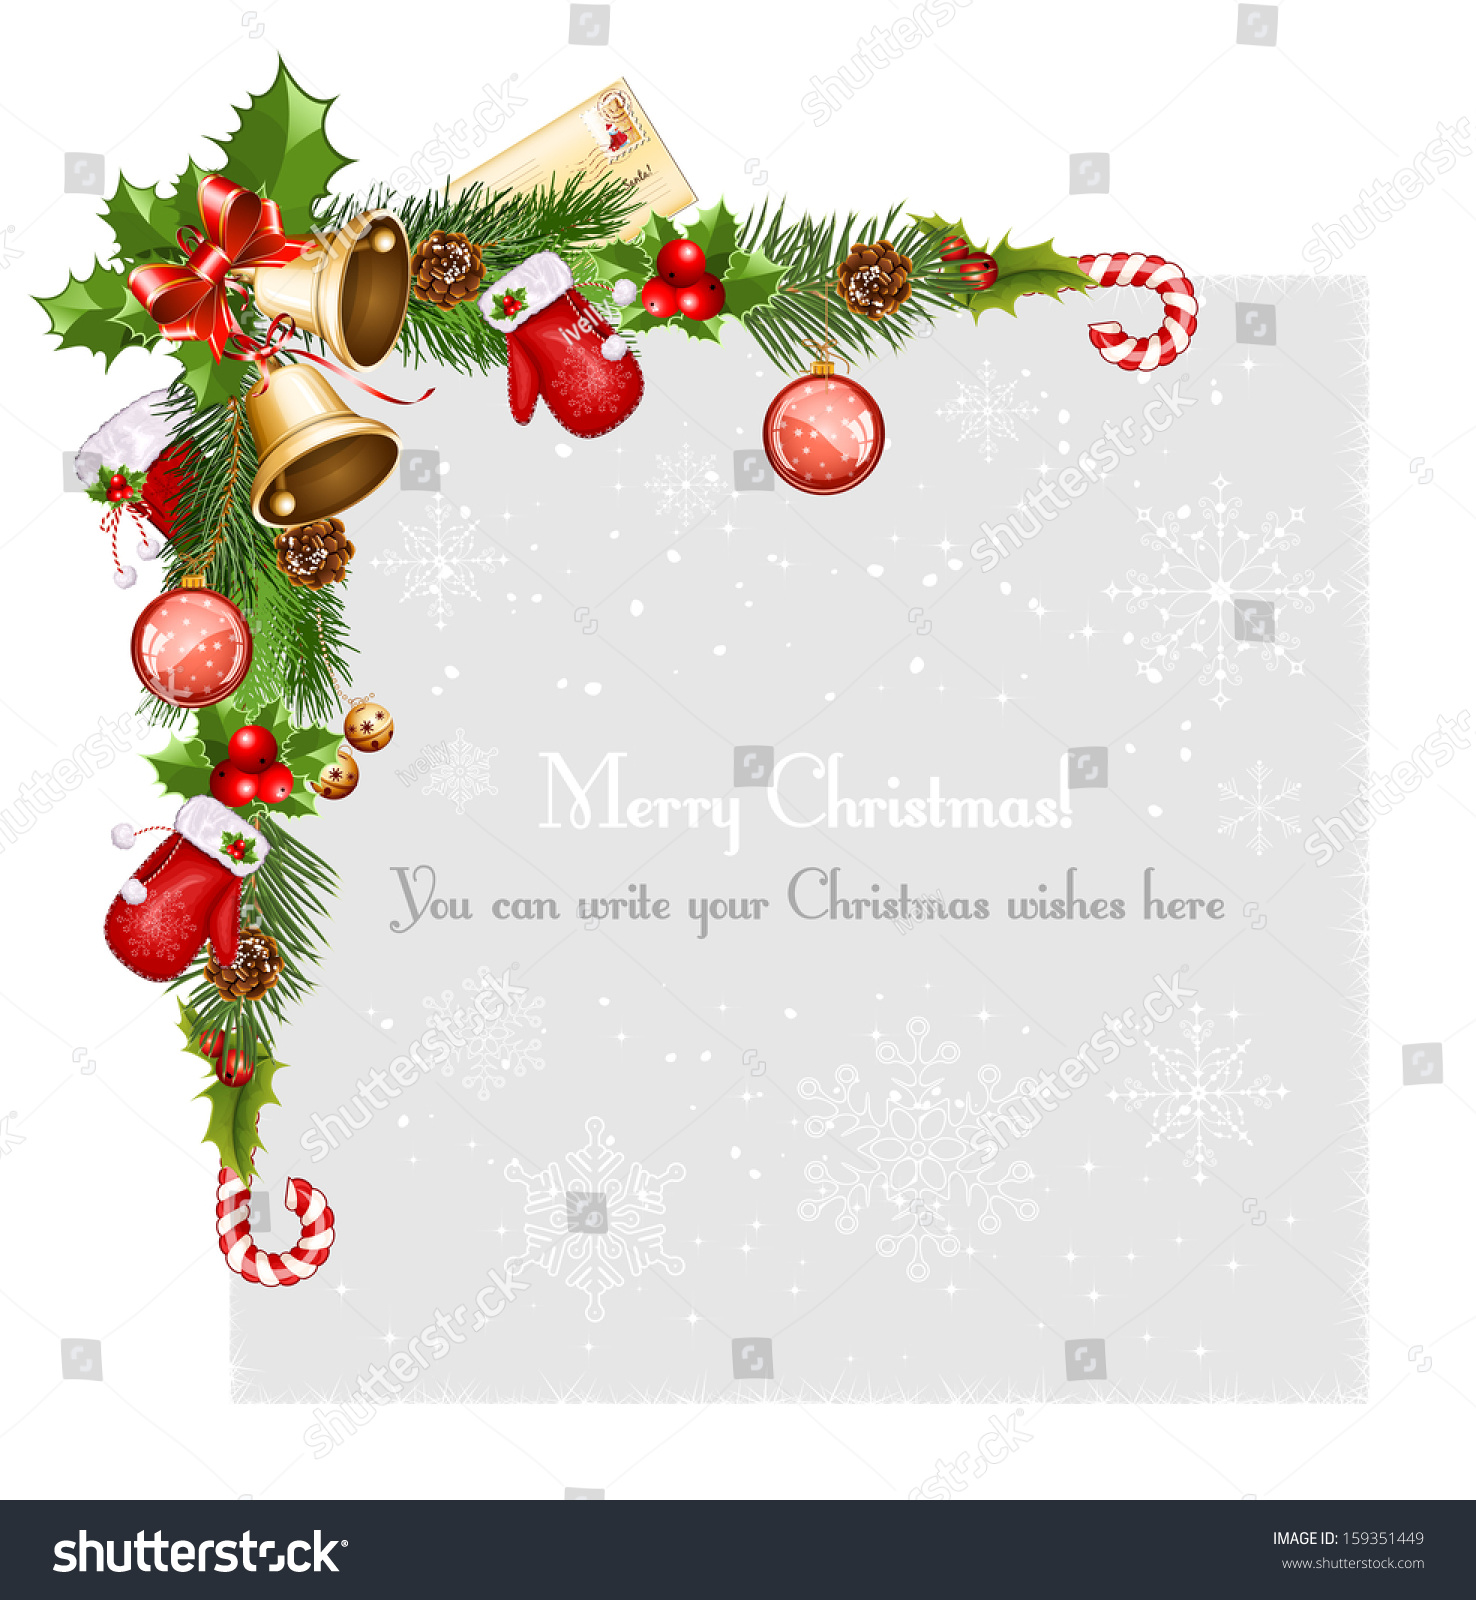 Why is holly a traditional christmas decoration - Decorative Border From A Traditional Christmas Objects Vector Illustration